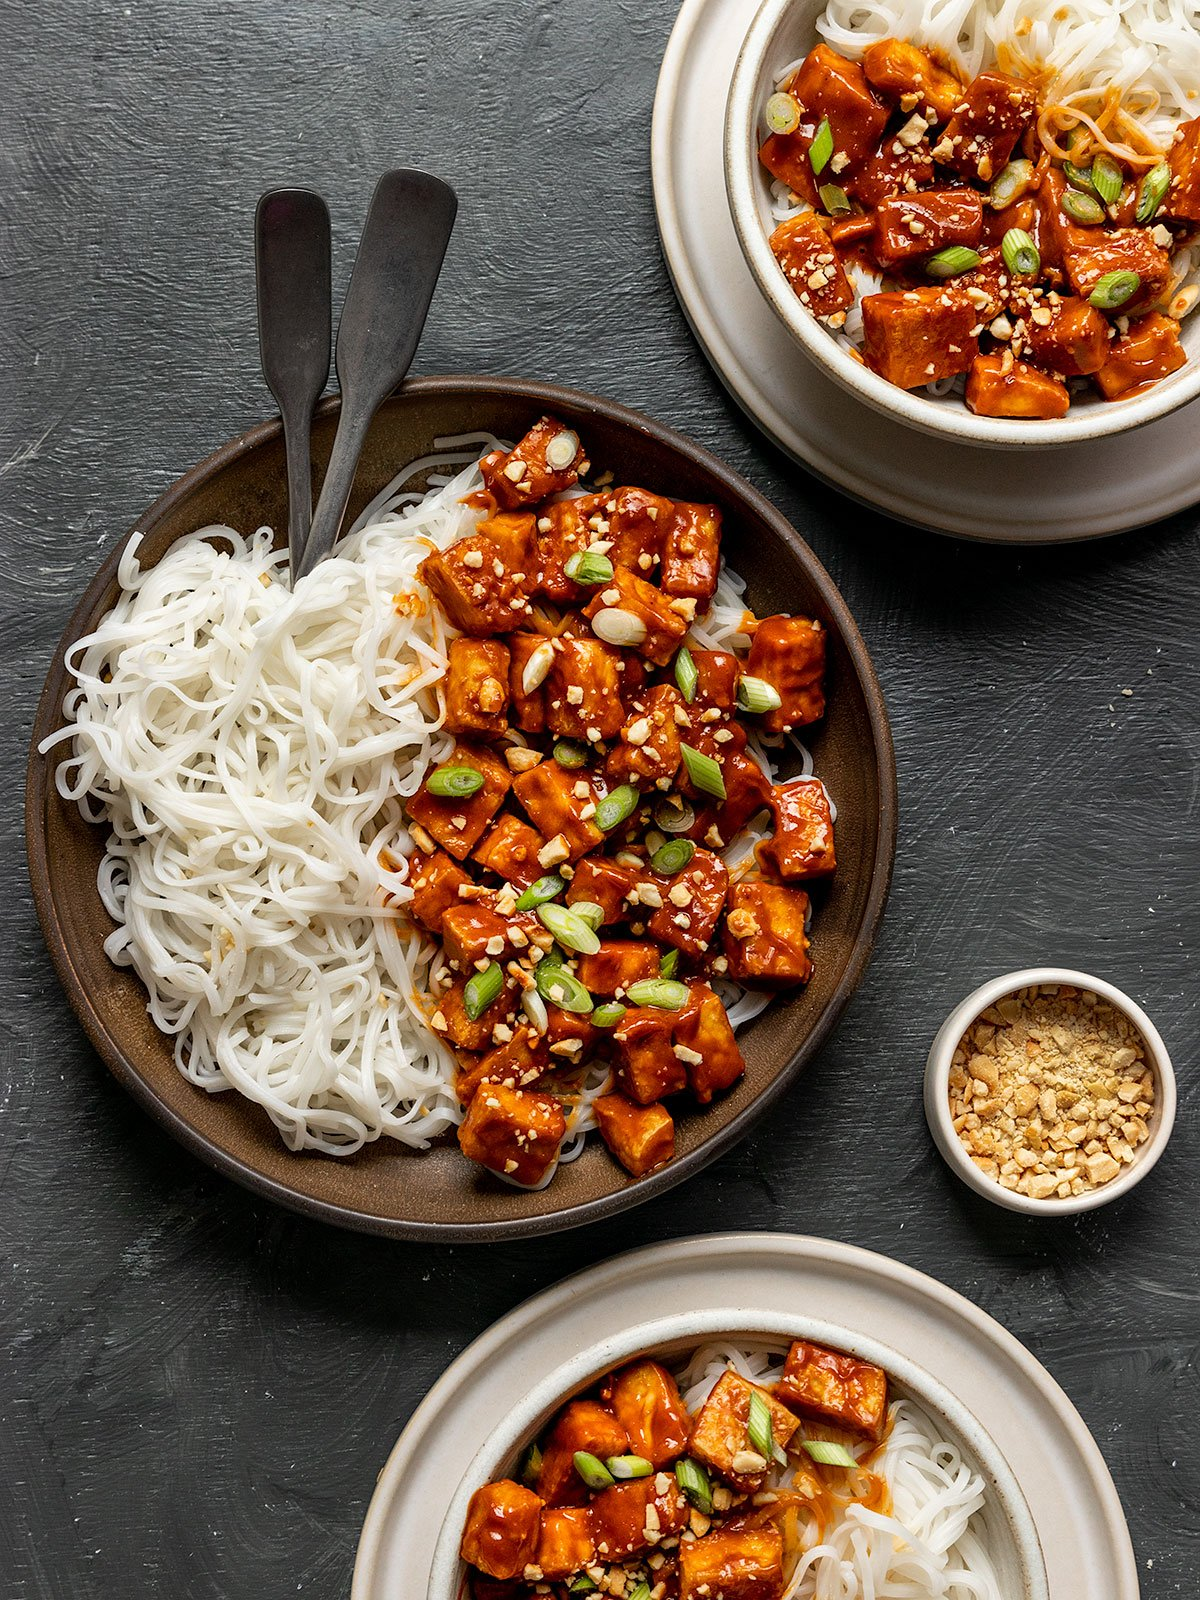 three bowls filled with peanut butter tofu on rice noodles